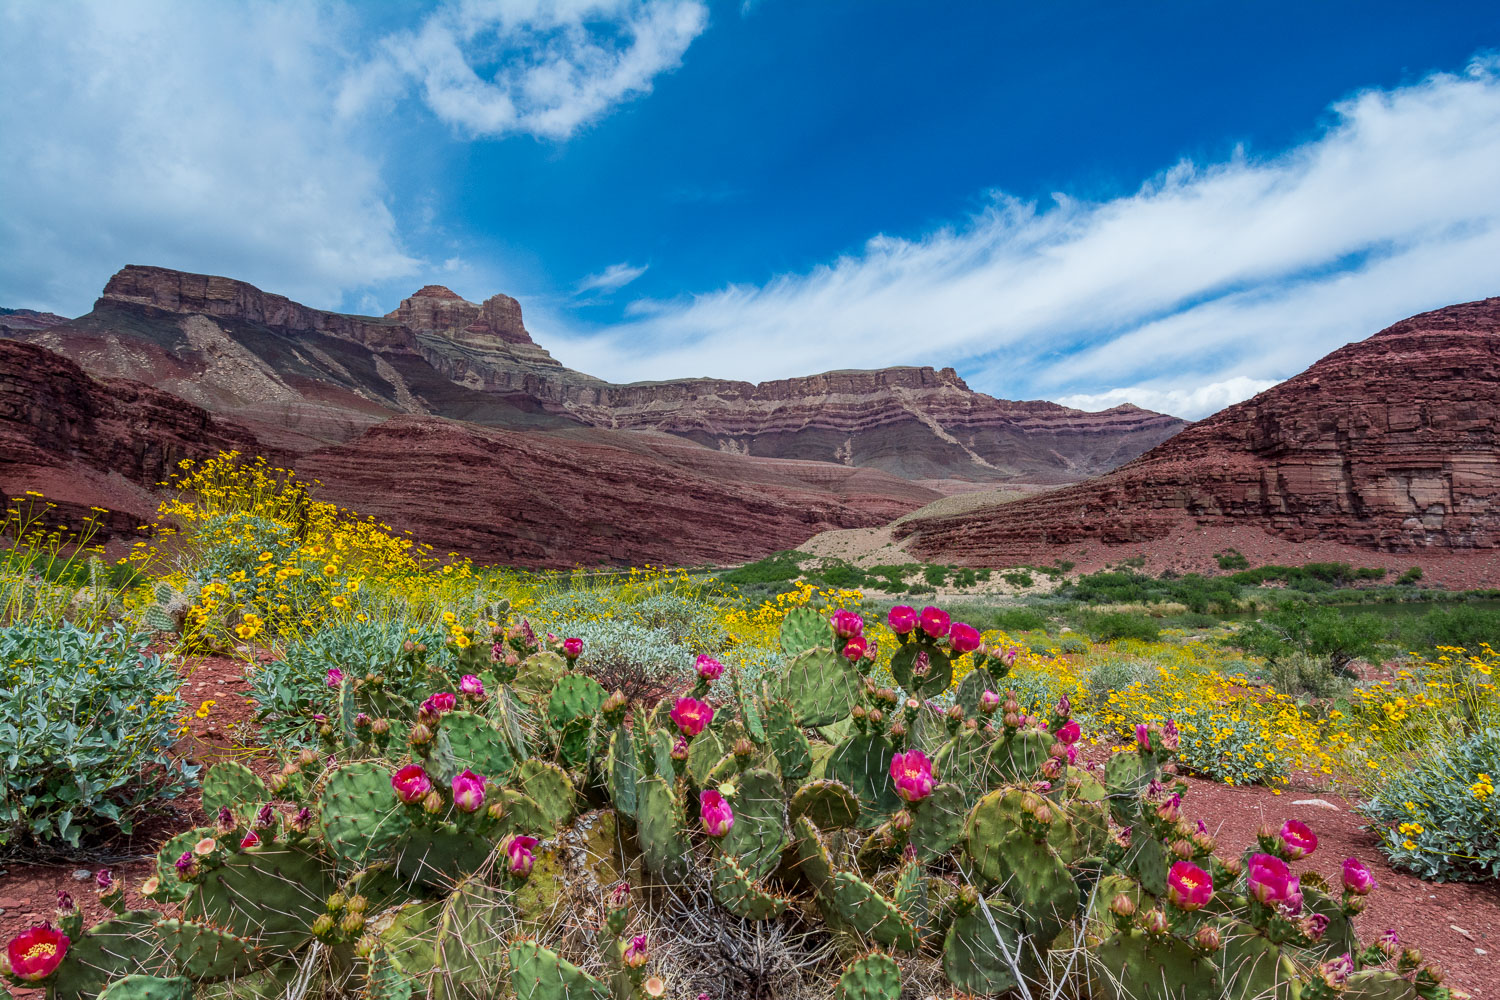 Beavertail Cactus and Brittlebush, Spring in Grand Canyon Nation